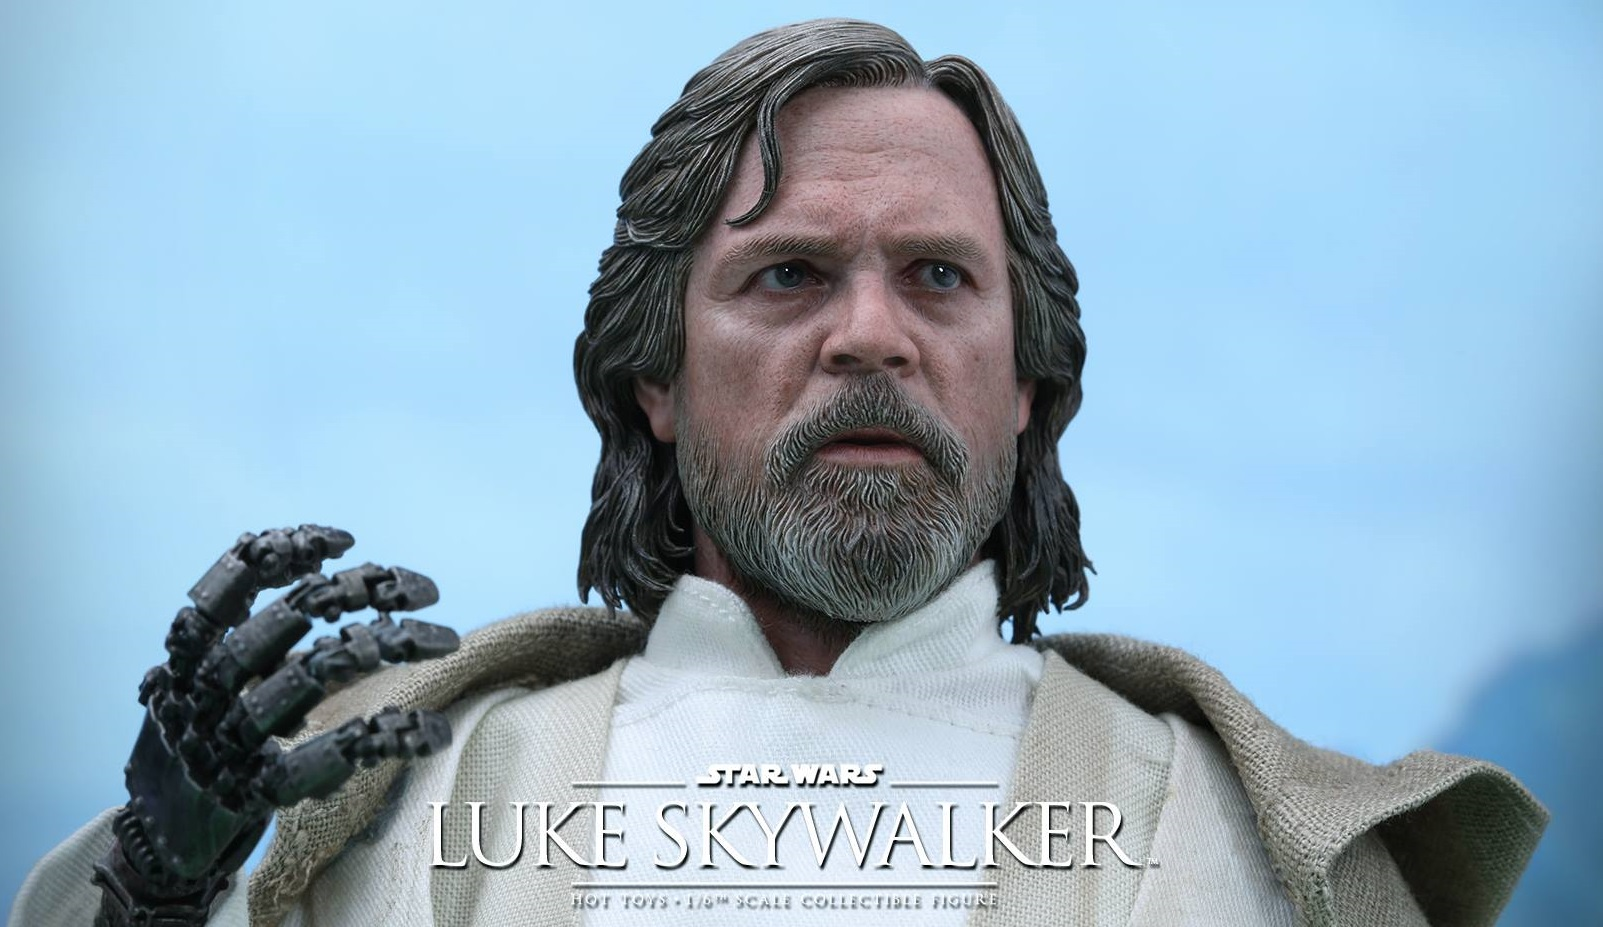 Hot Toys Luke Skywalker aus The Force Awakens in 1/6 Scale